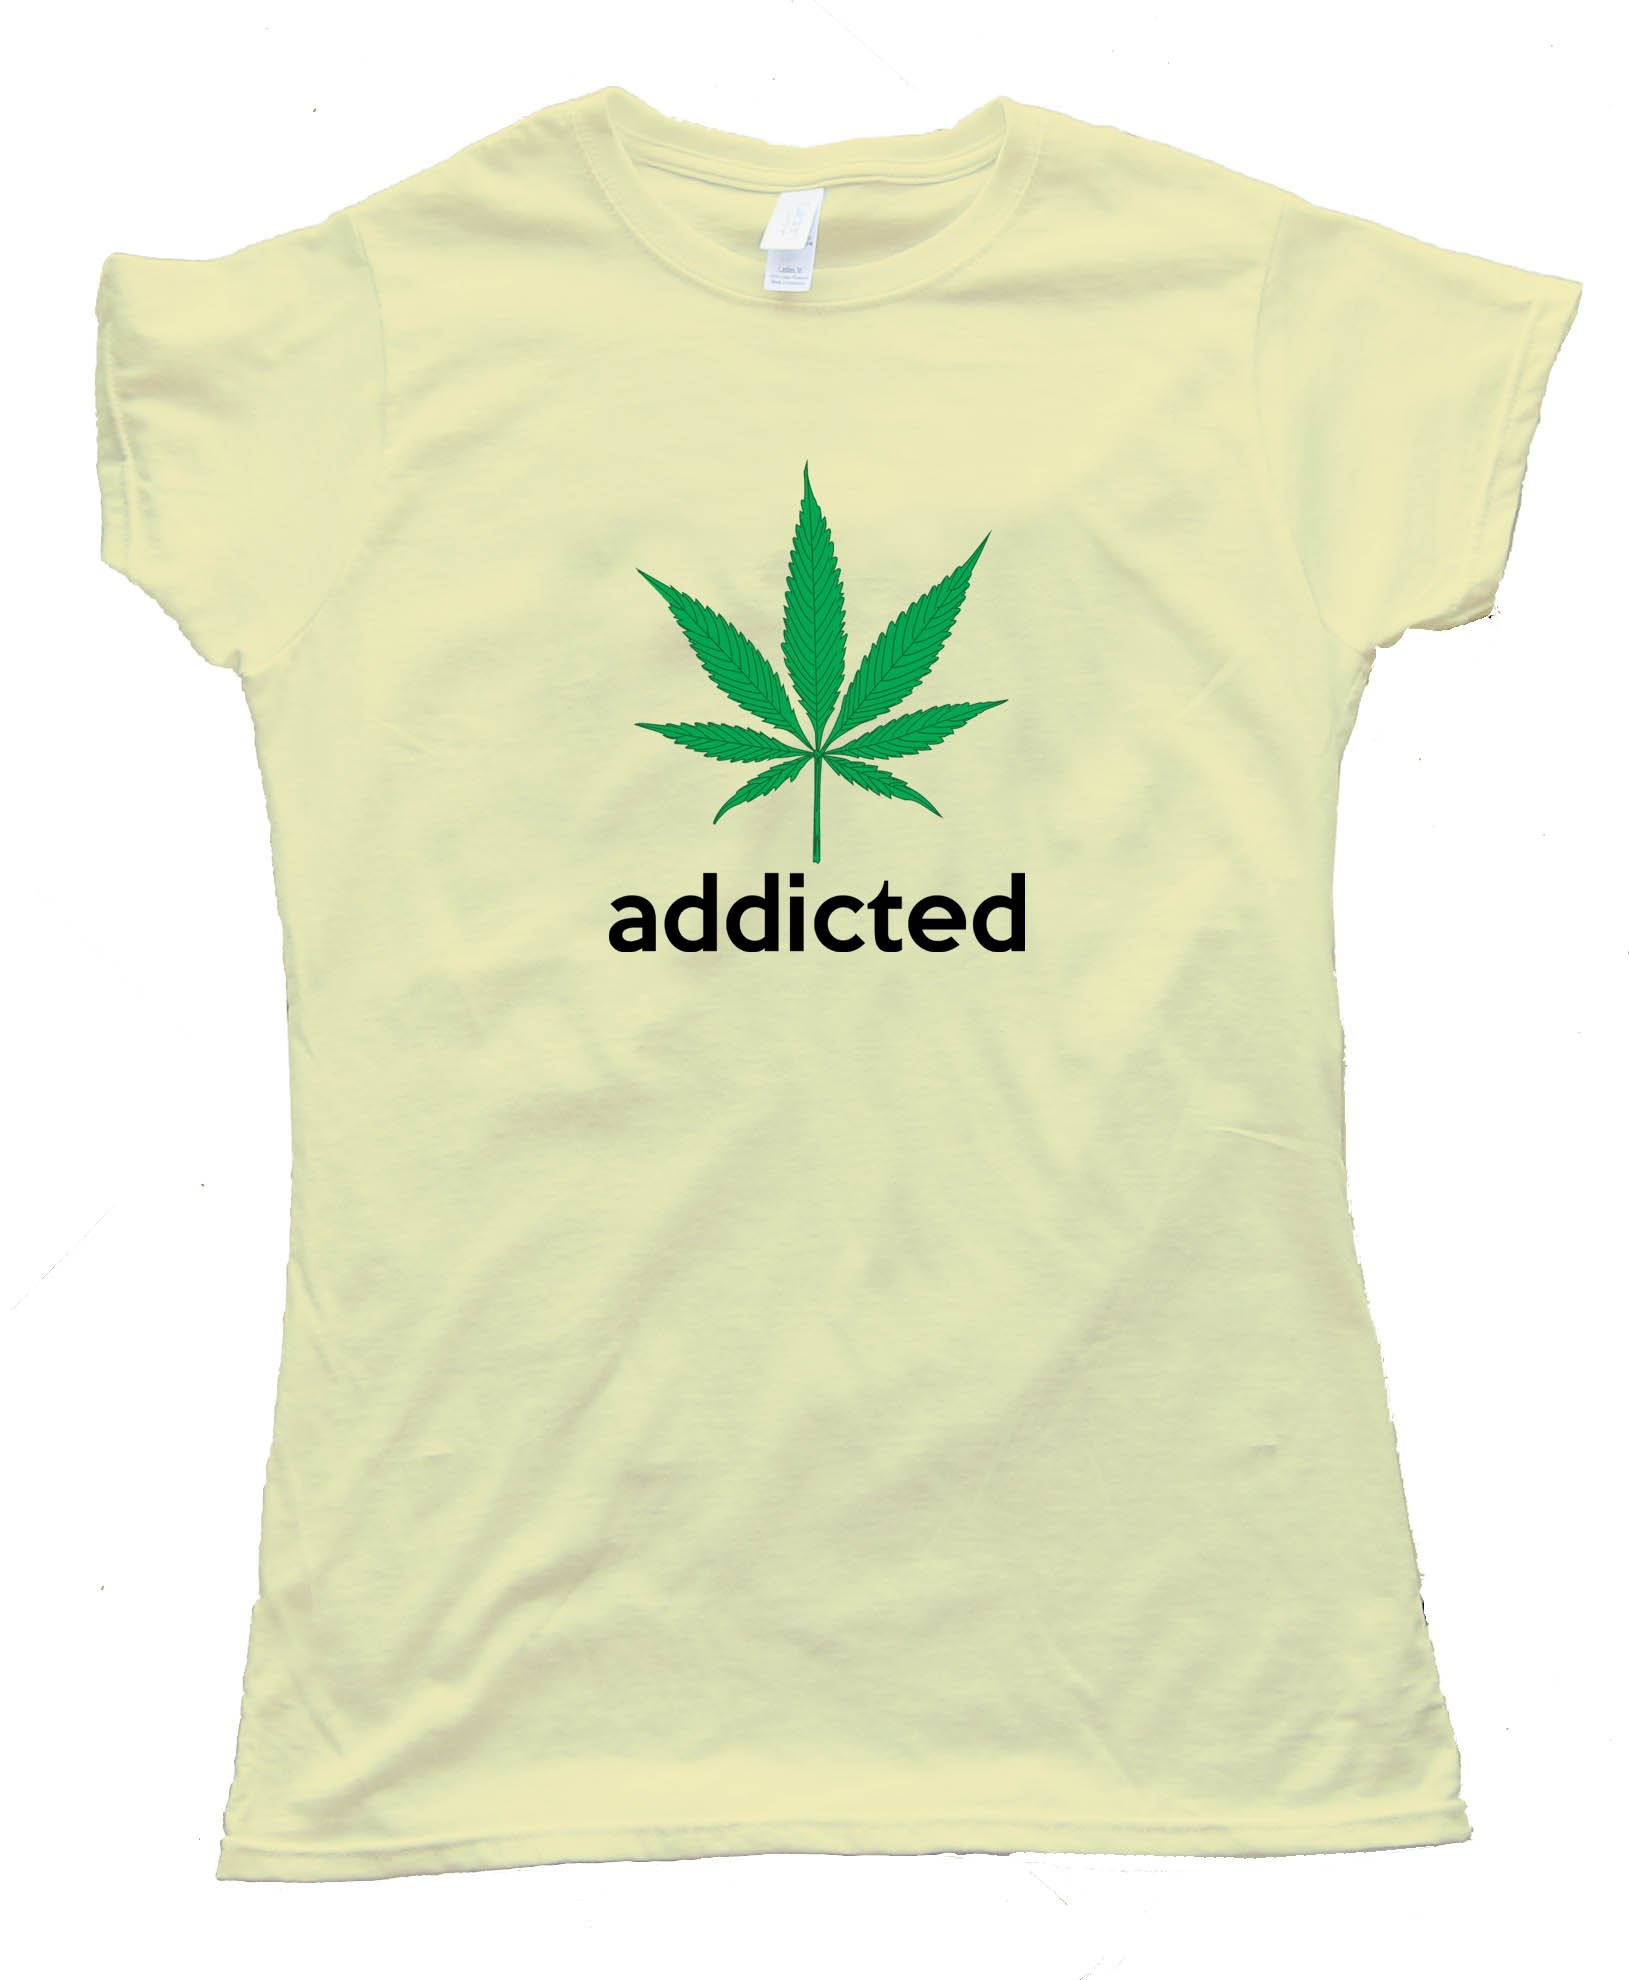 Womens Addicted Marijuana Leaf Adidas Parody Tee Shirt